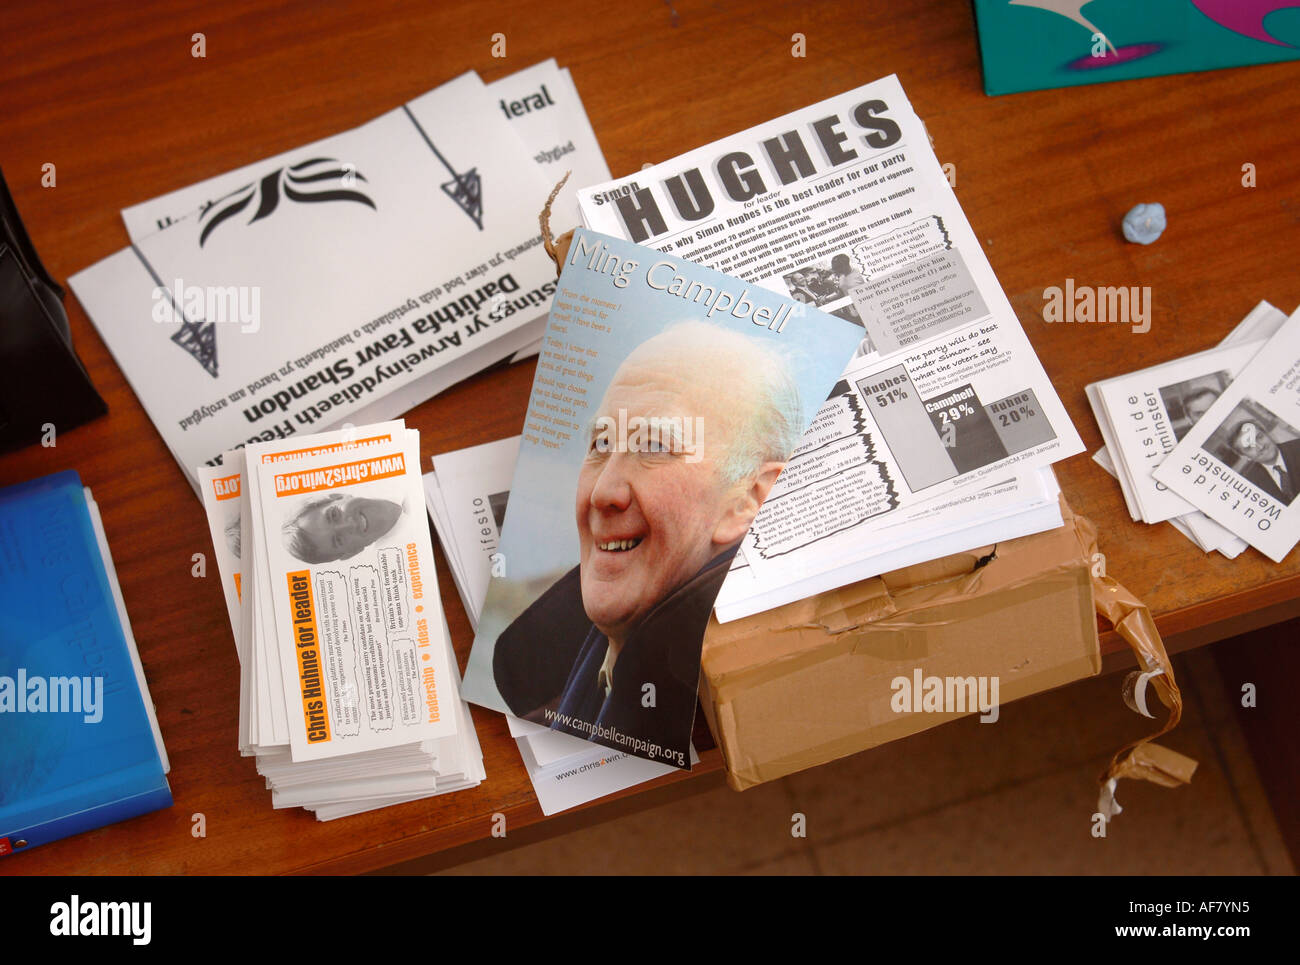 PAMPHLETS PROMOTING THE LIBERAL DEMOCRAT LEADERSHIP CONTENDERS L R SIR MENZIES CAMPBELL SIMON HUGHES AND CHRIS HUHNE - Stock Image